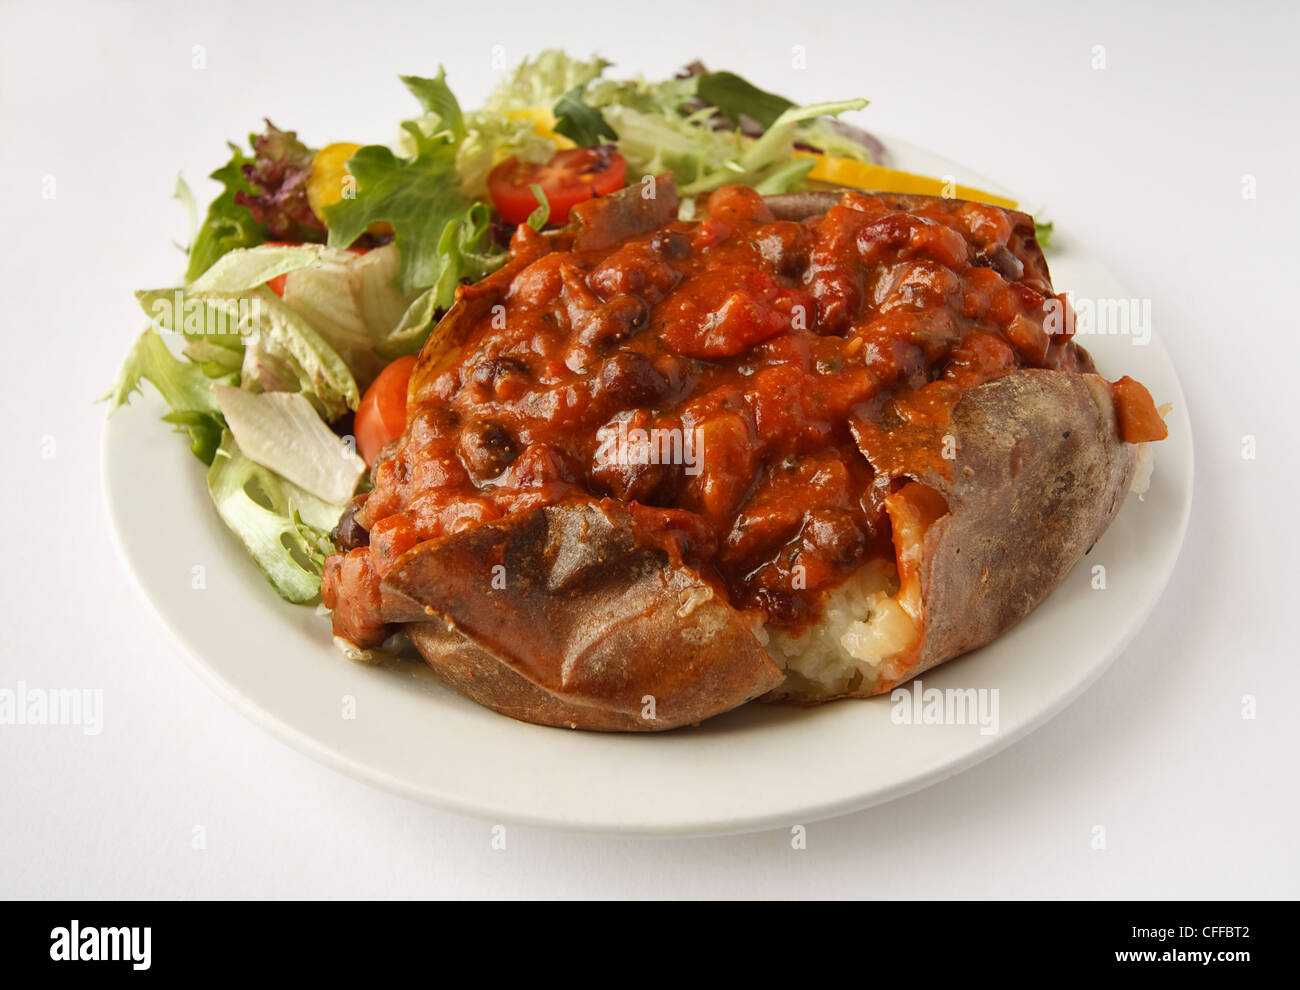 A beef chili baked potato on a plate with side salad - Stock Image